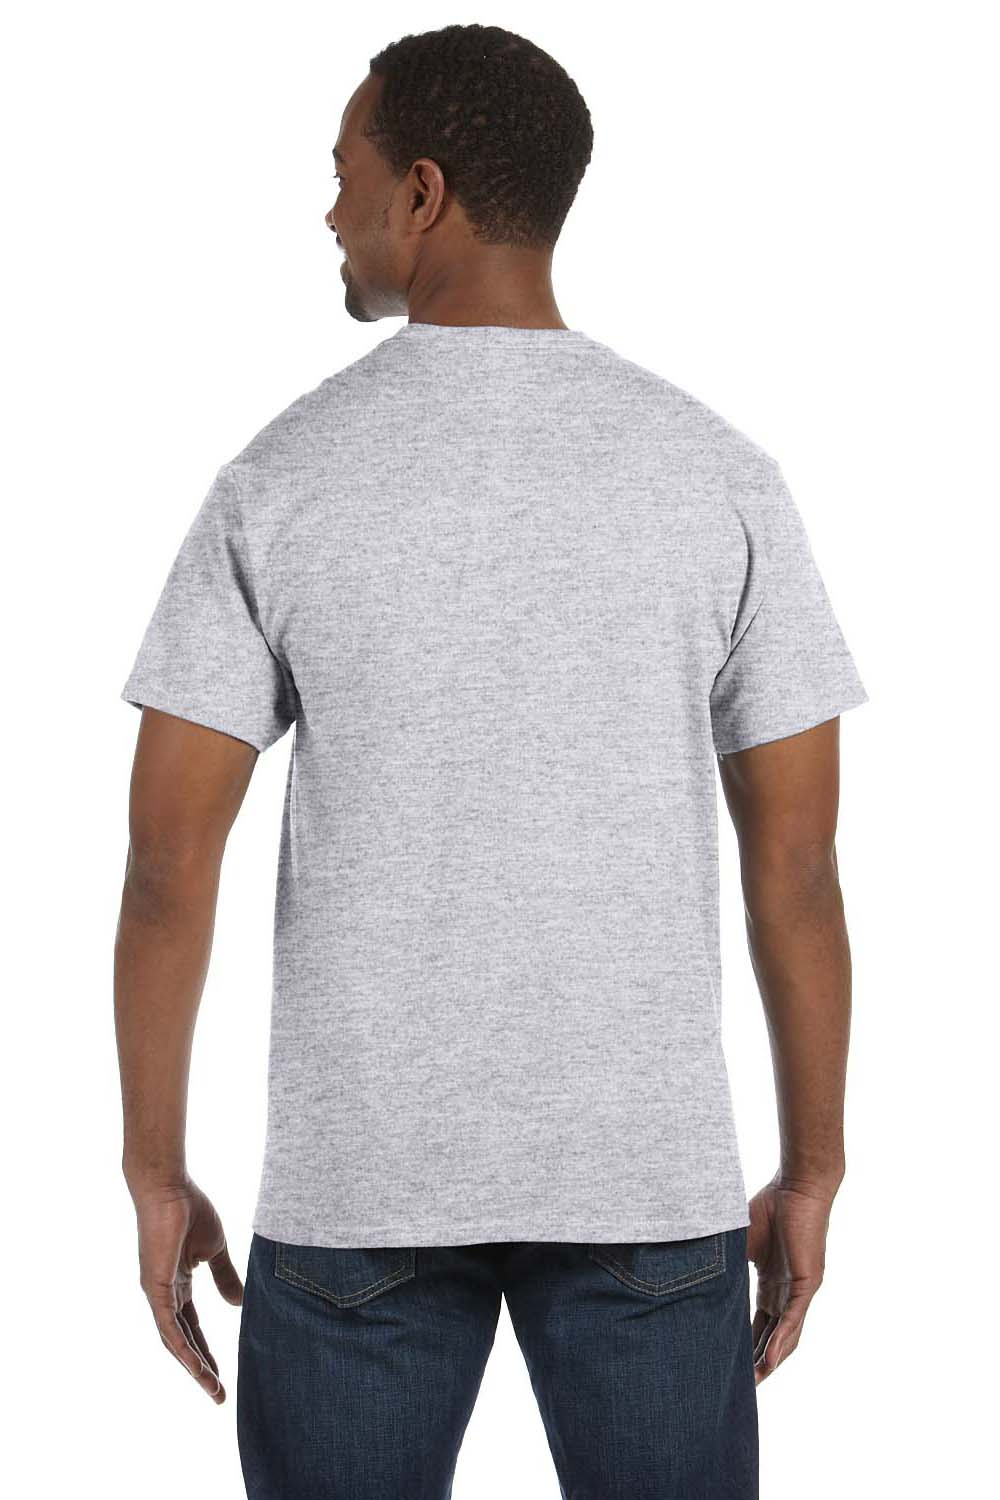 Hanes 5250T Mens ComfortSoft Short Sleeve Crewneck T-Shirt Ash Grey Back